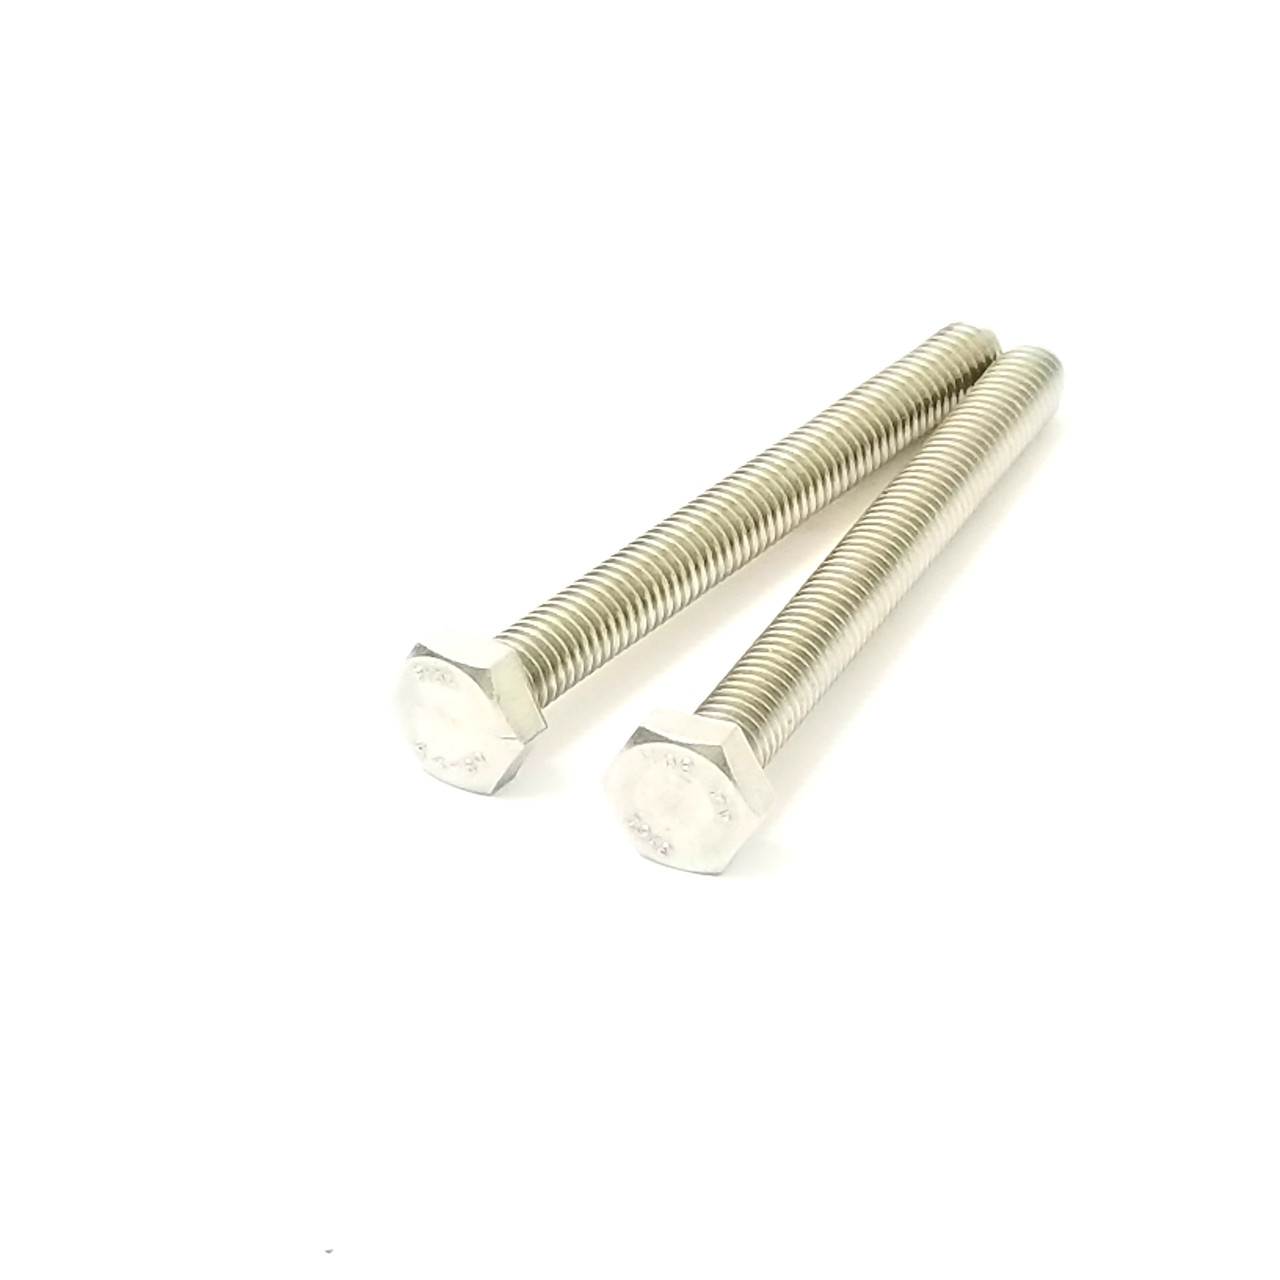 HHB1316 Hex head bolt M6x30 316 Stainless